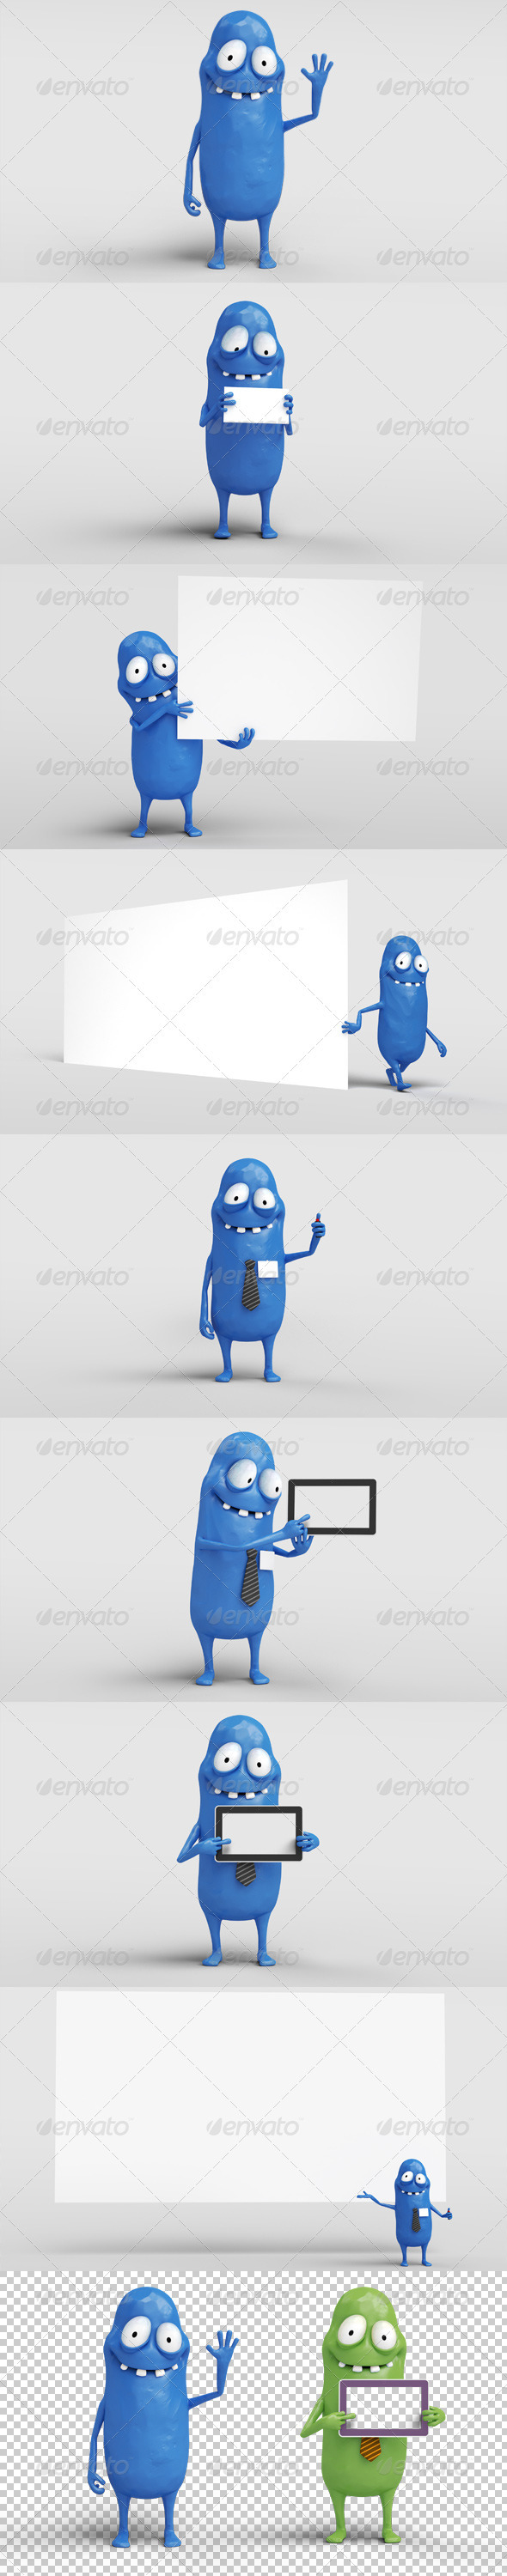 GraphicRiver Bobby Character Stills 3967946